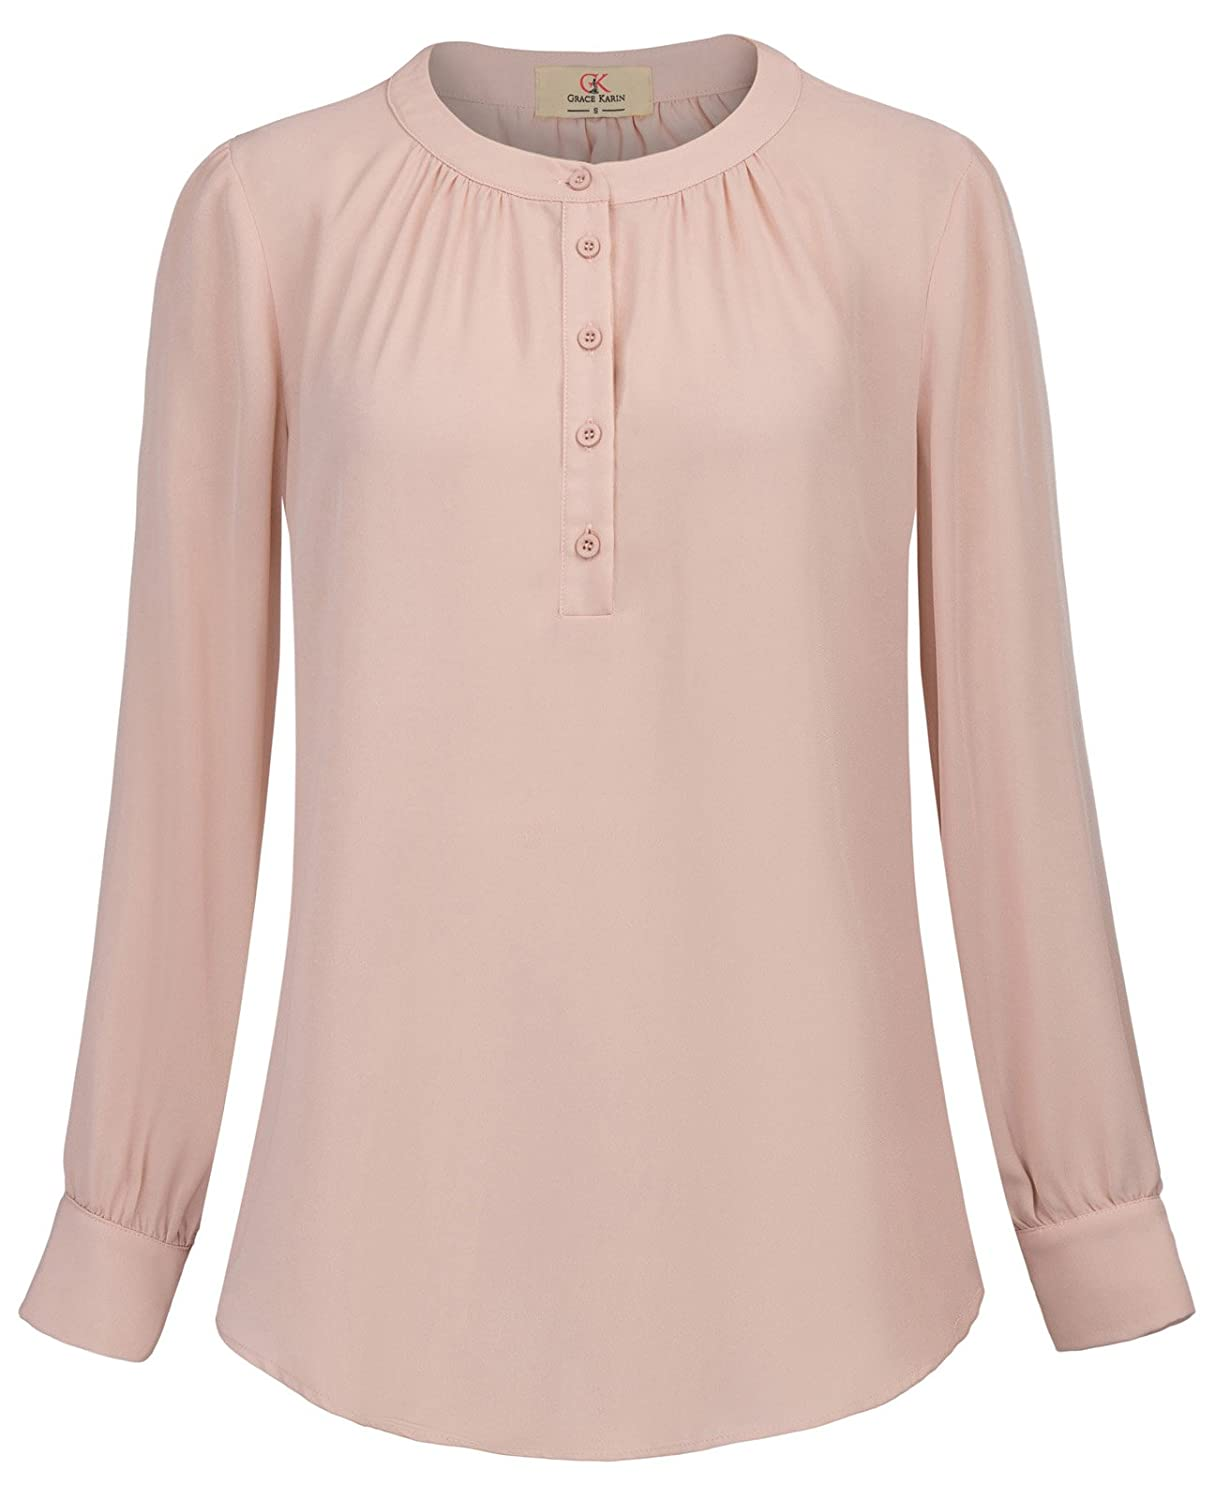 GRACE KARIN Womens Round Neck Blouses Long Roll-up Sleeve Button Casual Shirt Size 2XL Pink at Amazon Womens Clothing store: